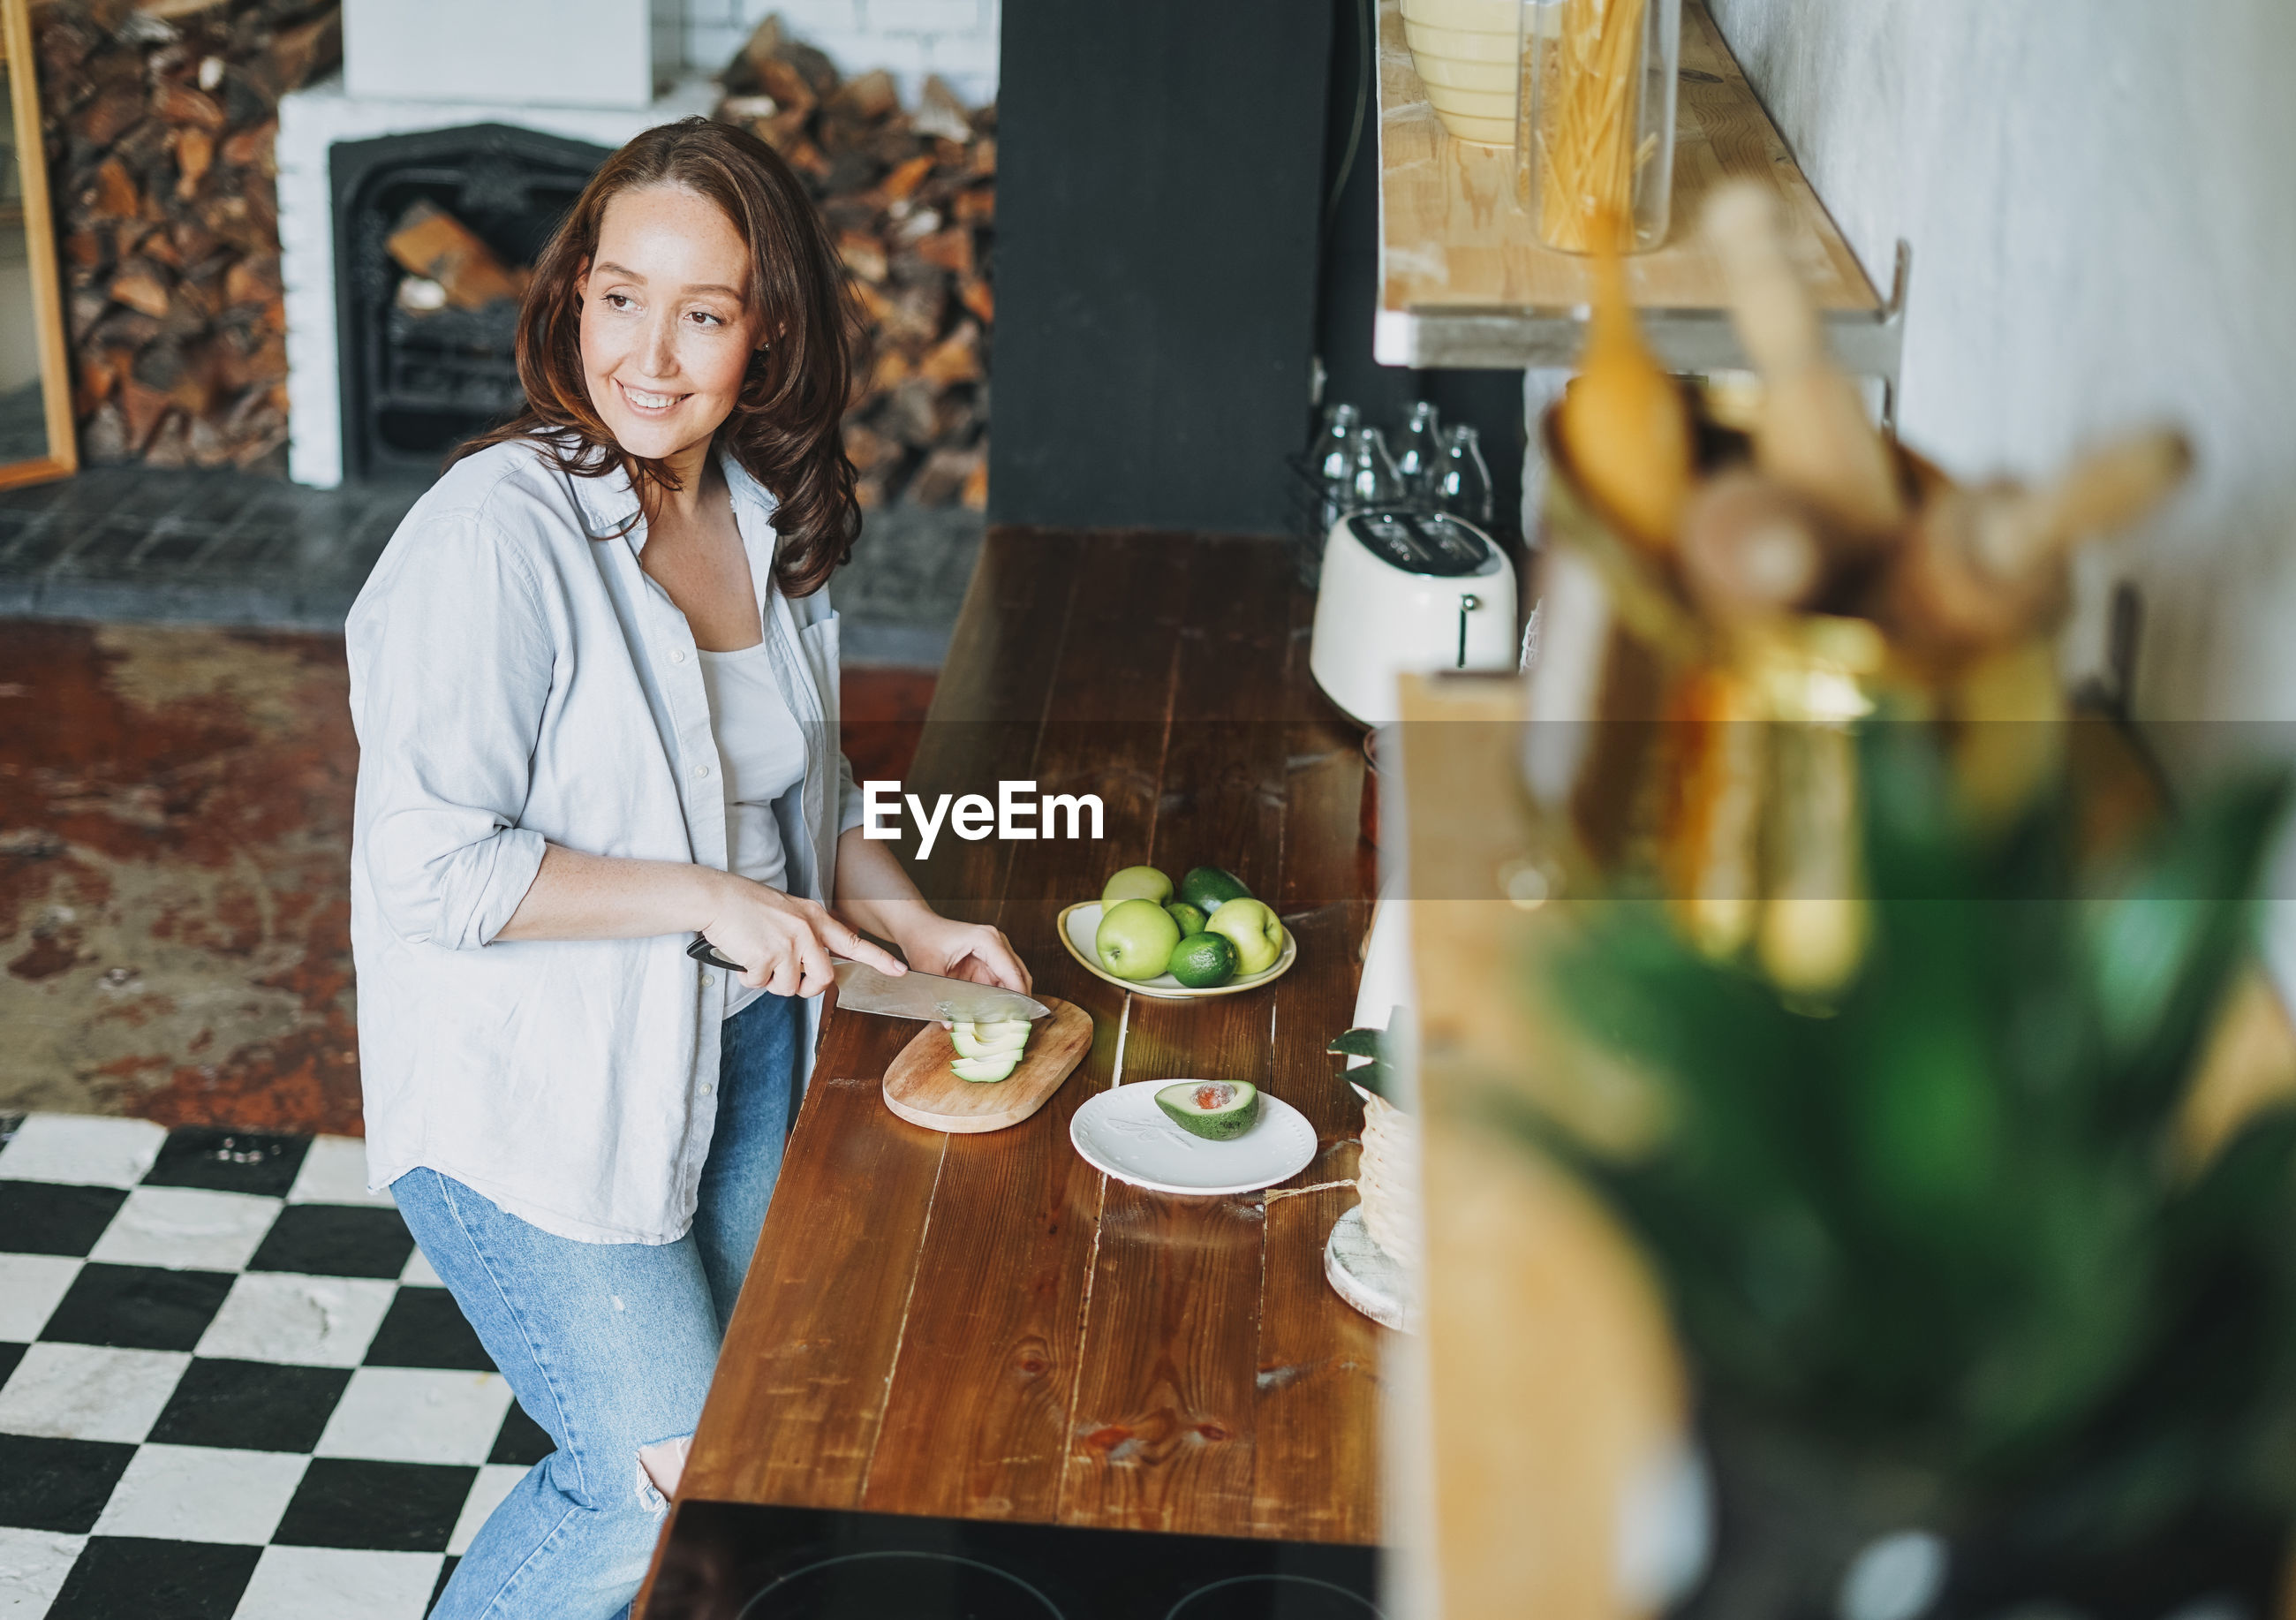 YOUNG WOMAN STANDING BY FOOD ON TABLE